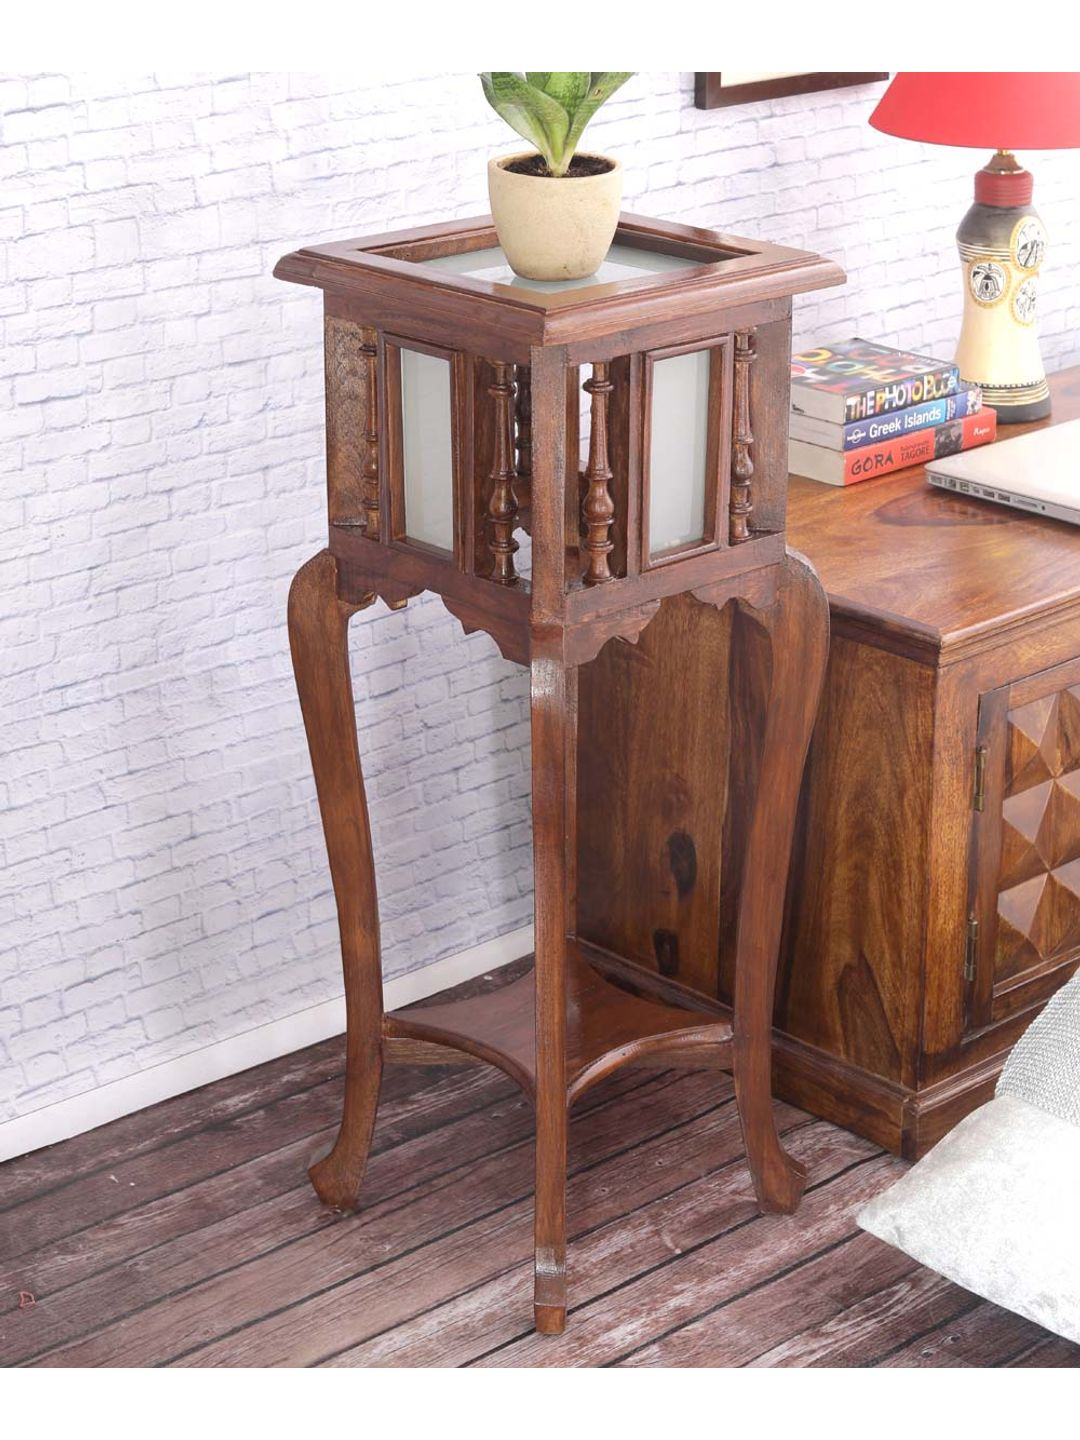 VarEesha Antique Look Recycled Teak Wood 30 Inch Planter Table